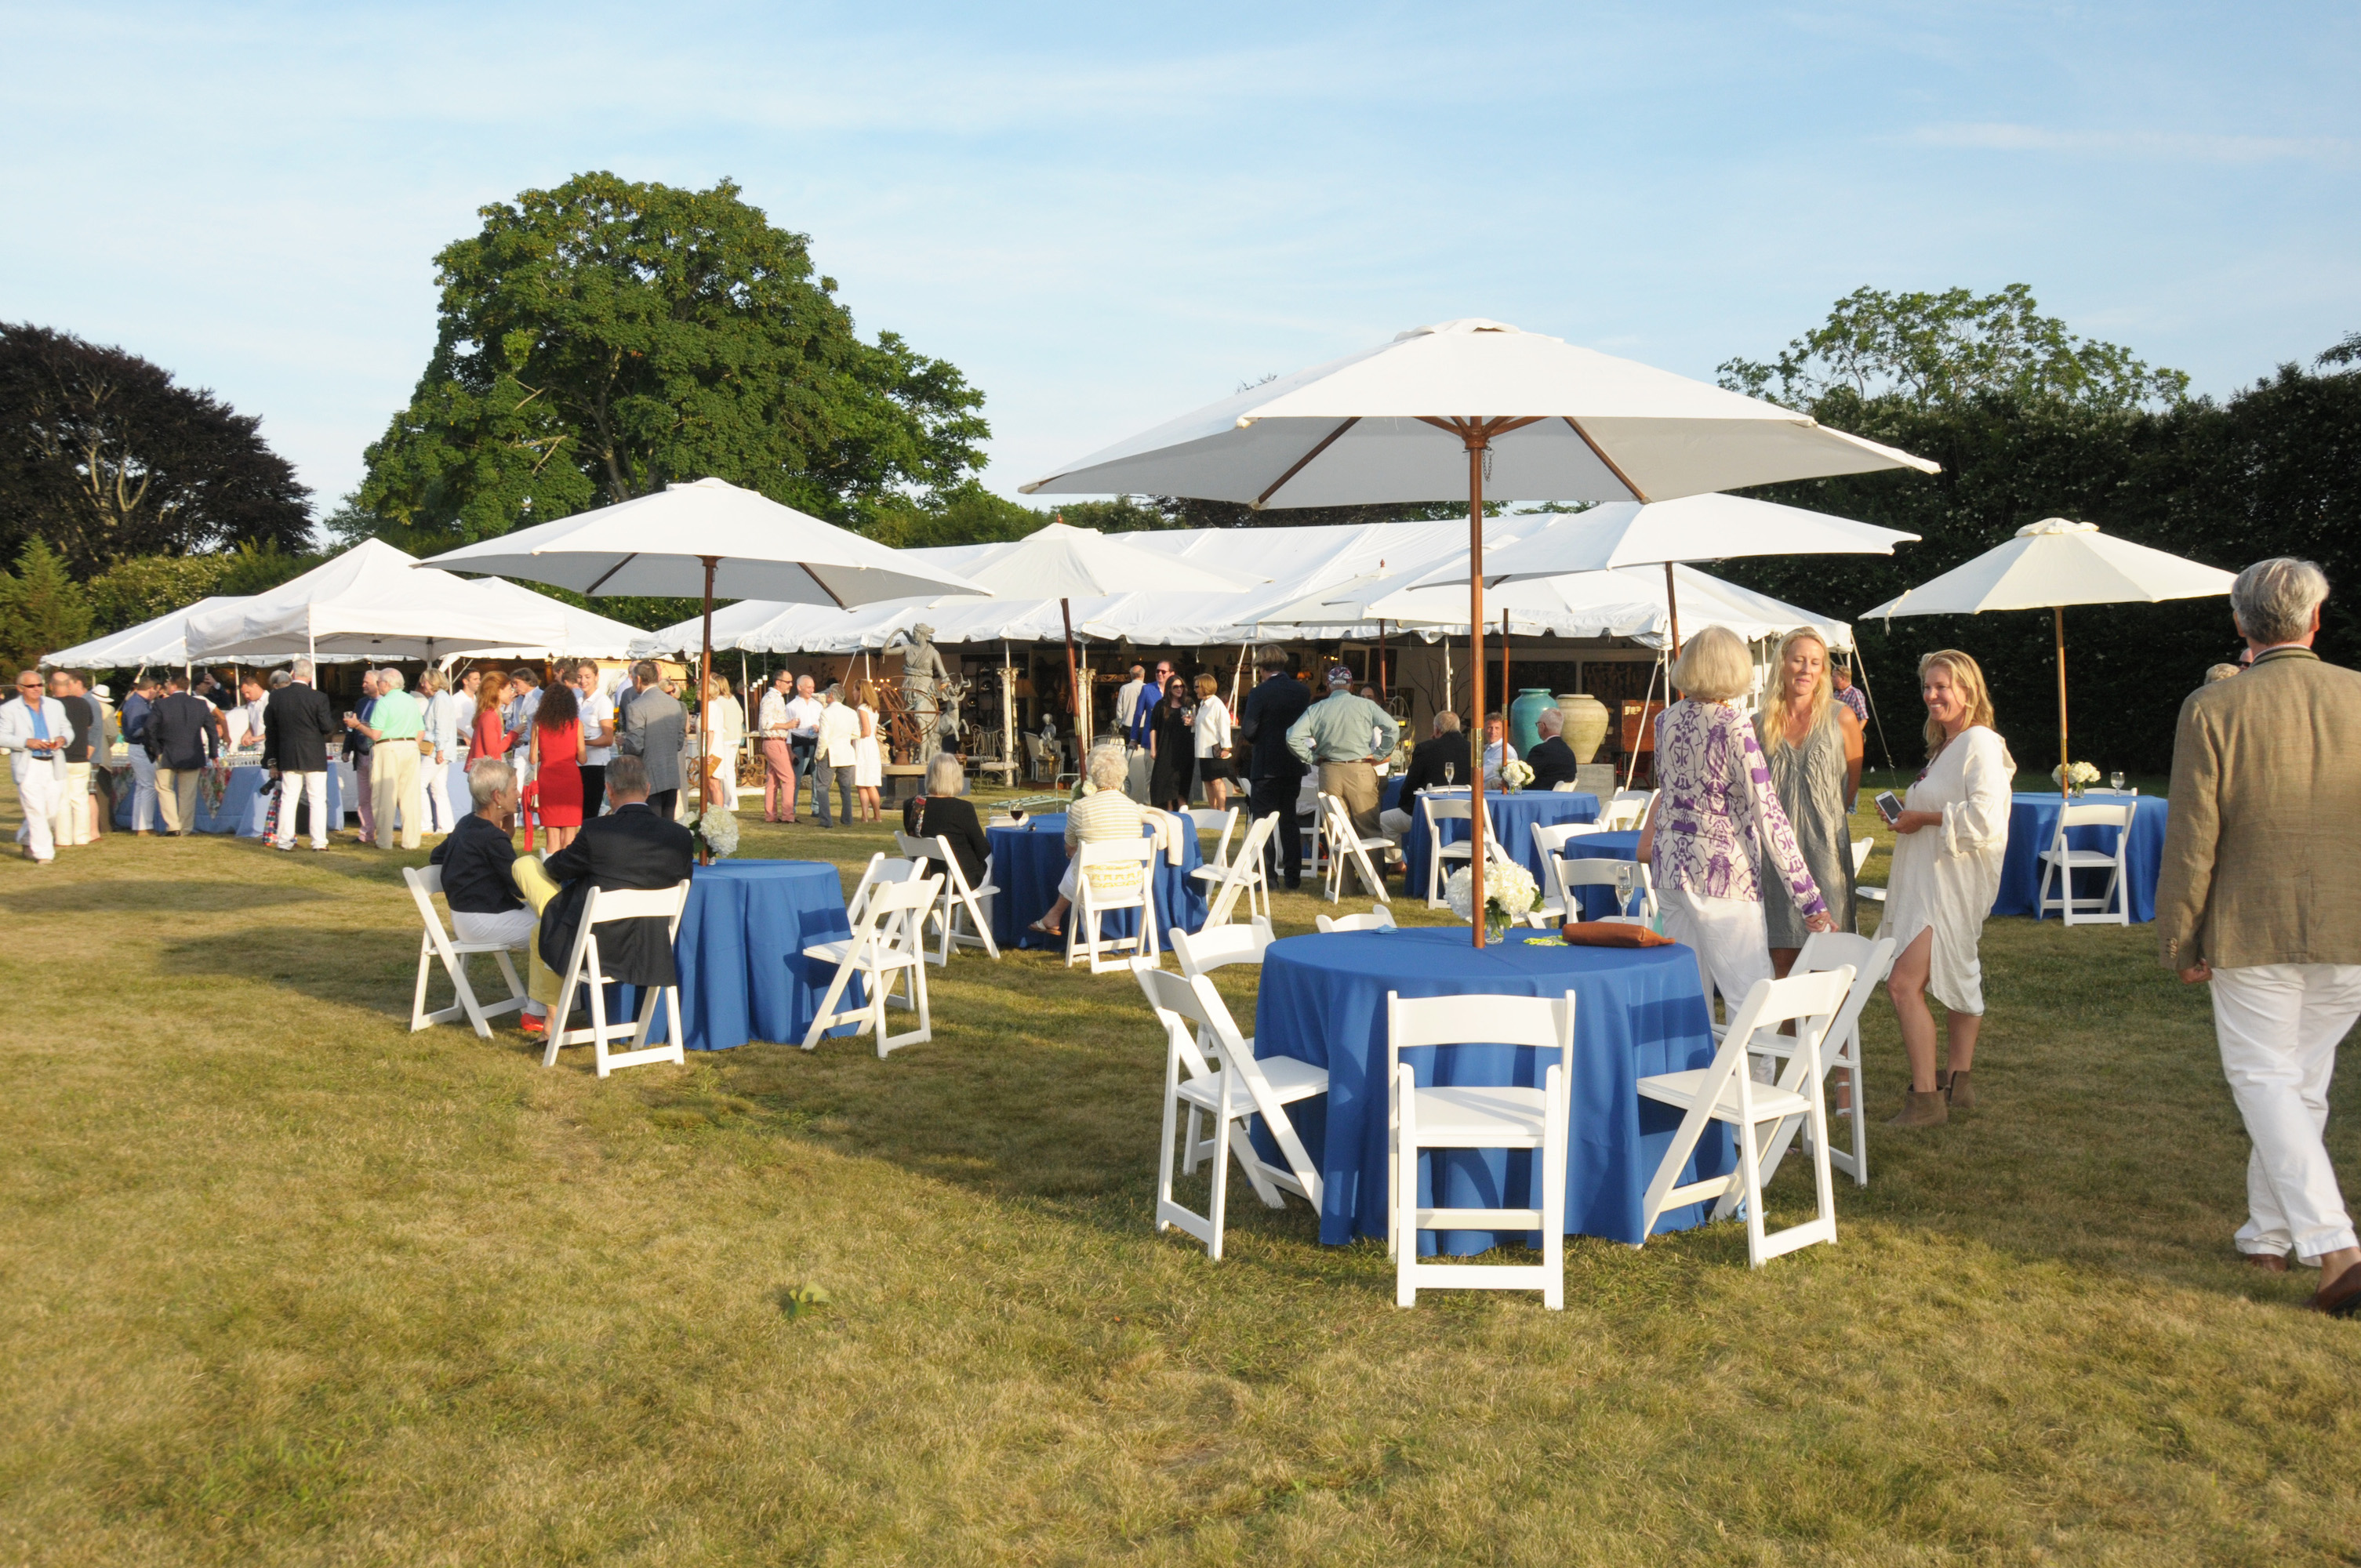 image: The East Hampton Historical Society Antiques Show (credit: Richard Lewin)